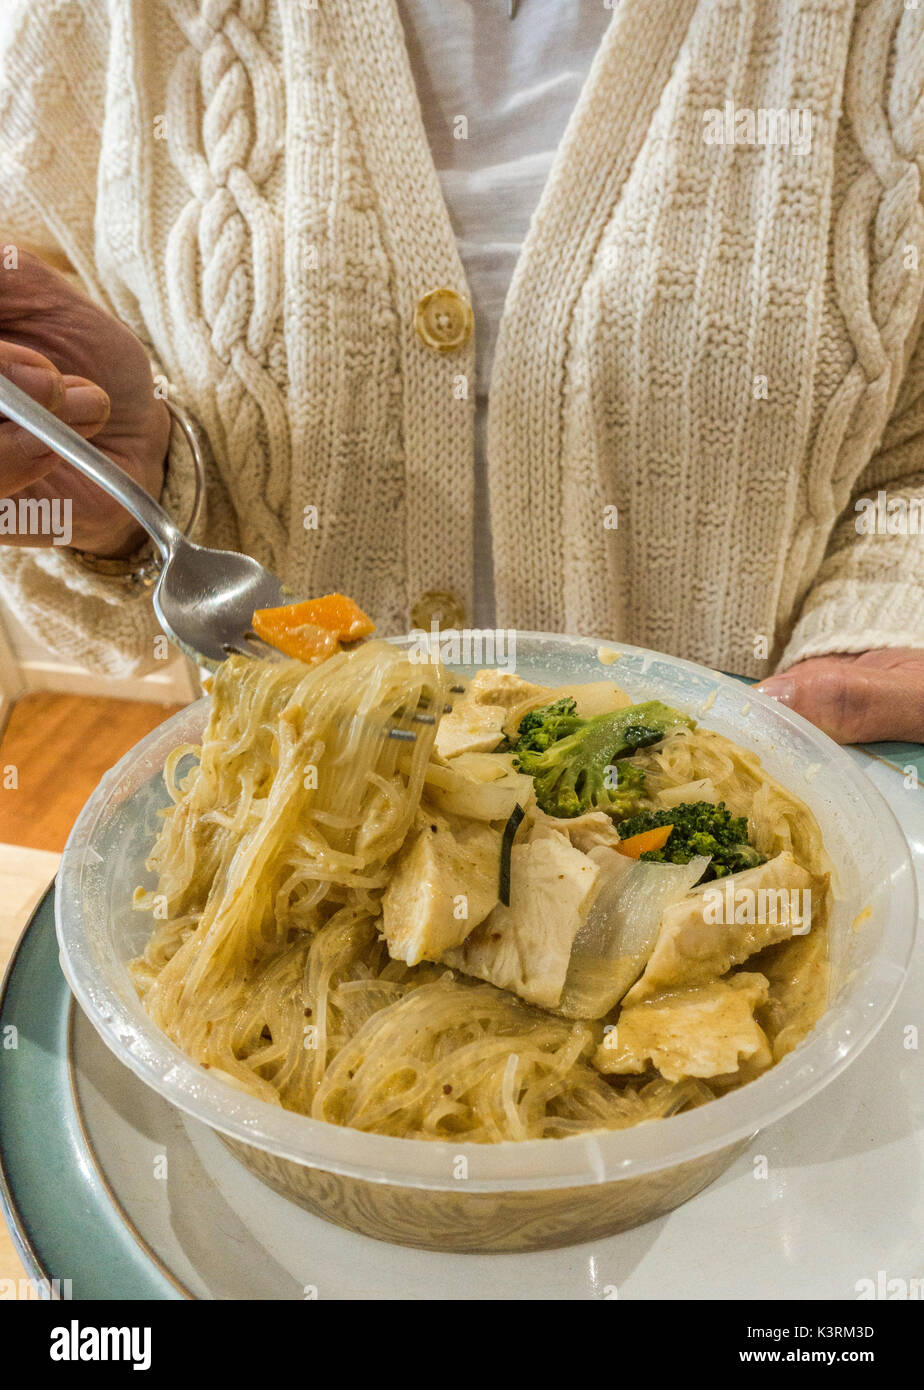 A woman holding a fork and a plate of hot Chinese vegetable noodles in a plastic container, as part of a takeaway meal at home. England, UK. - Stock Image